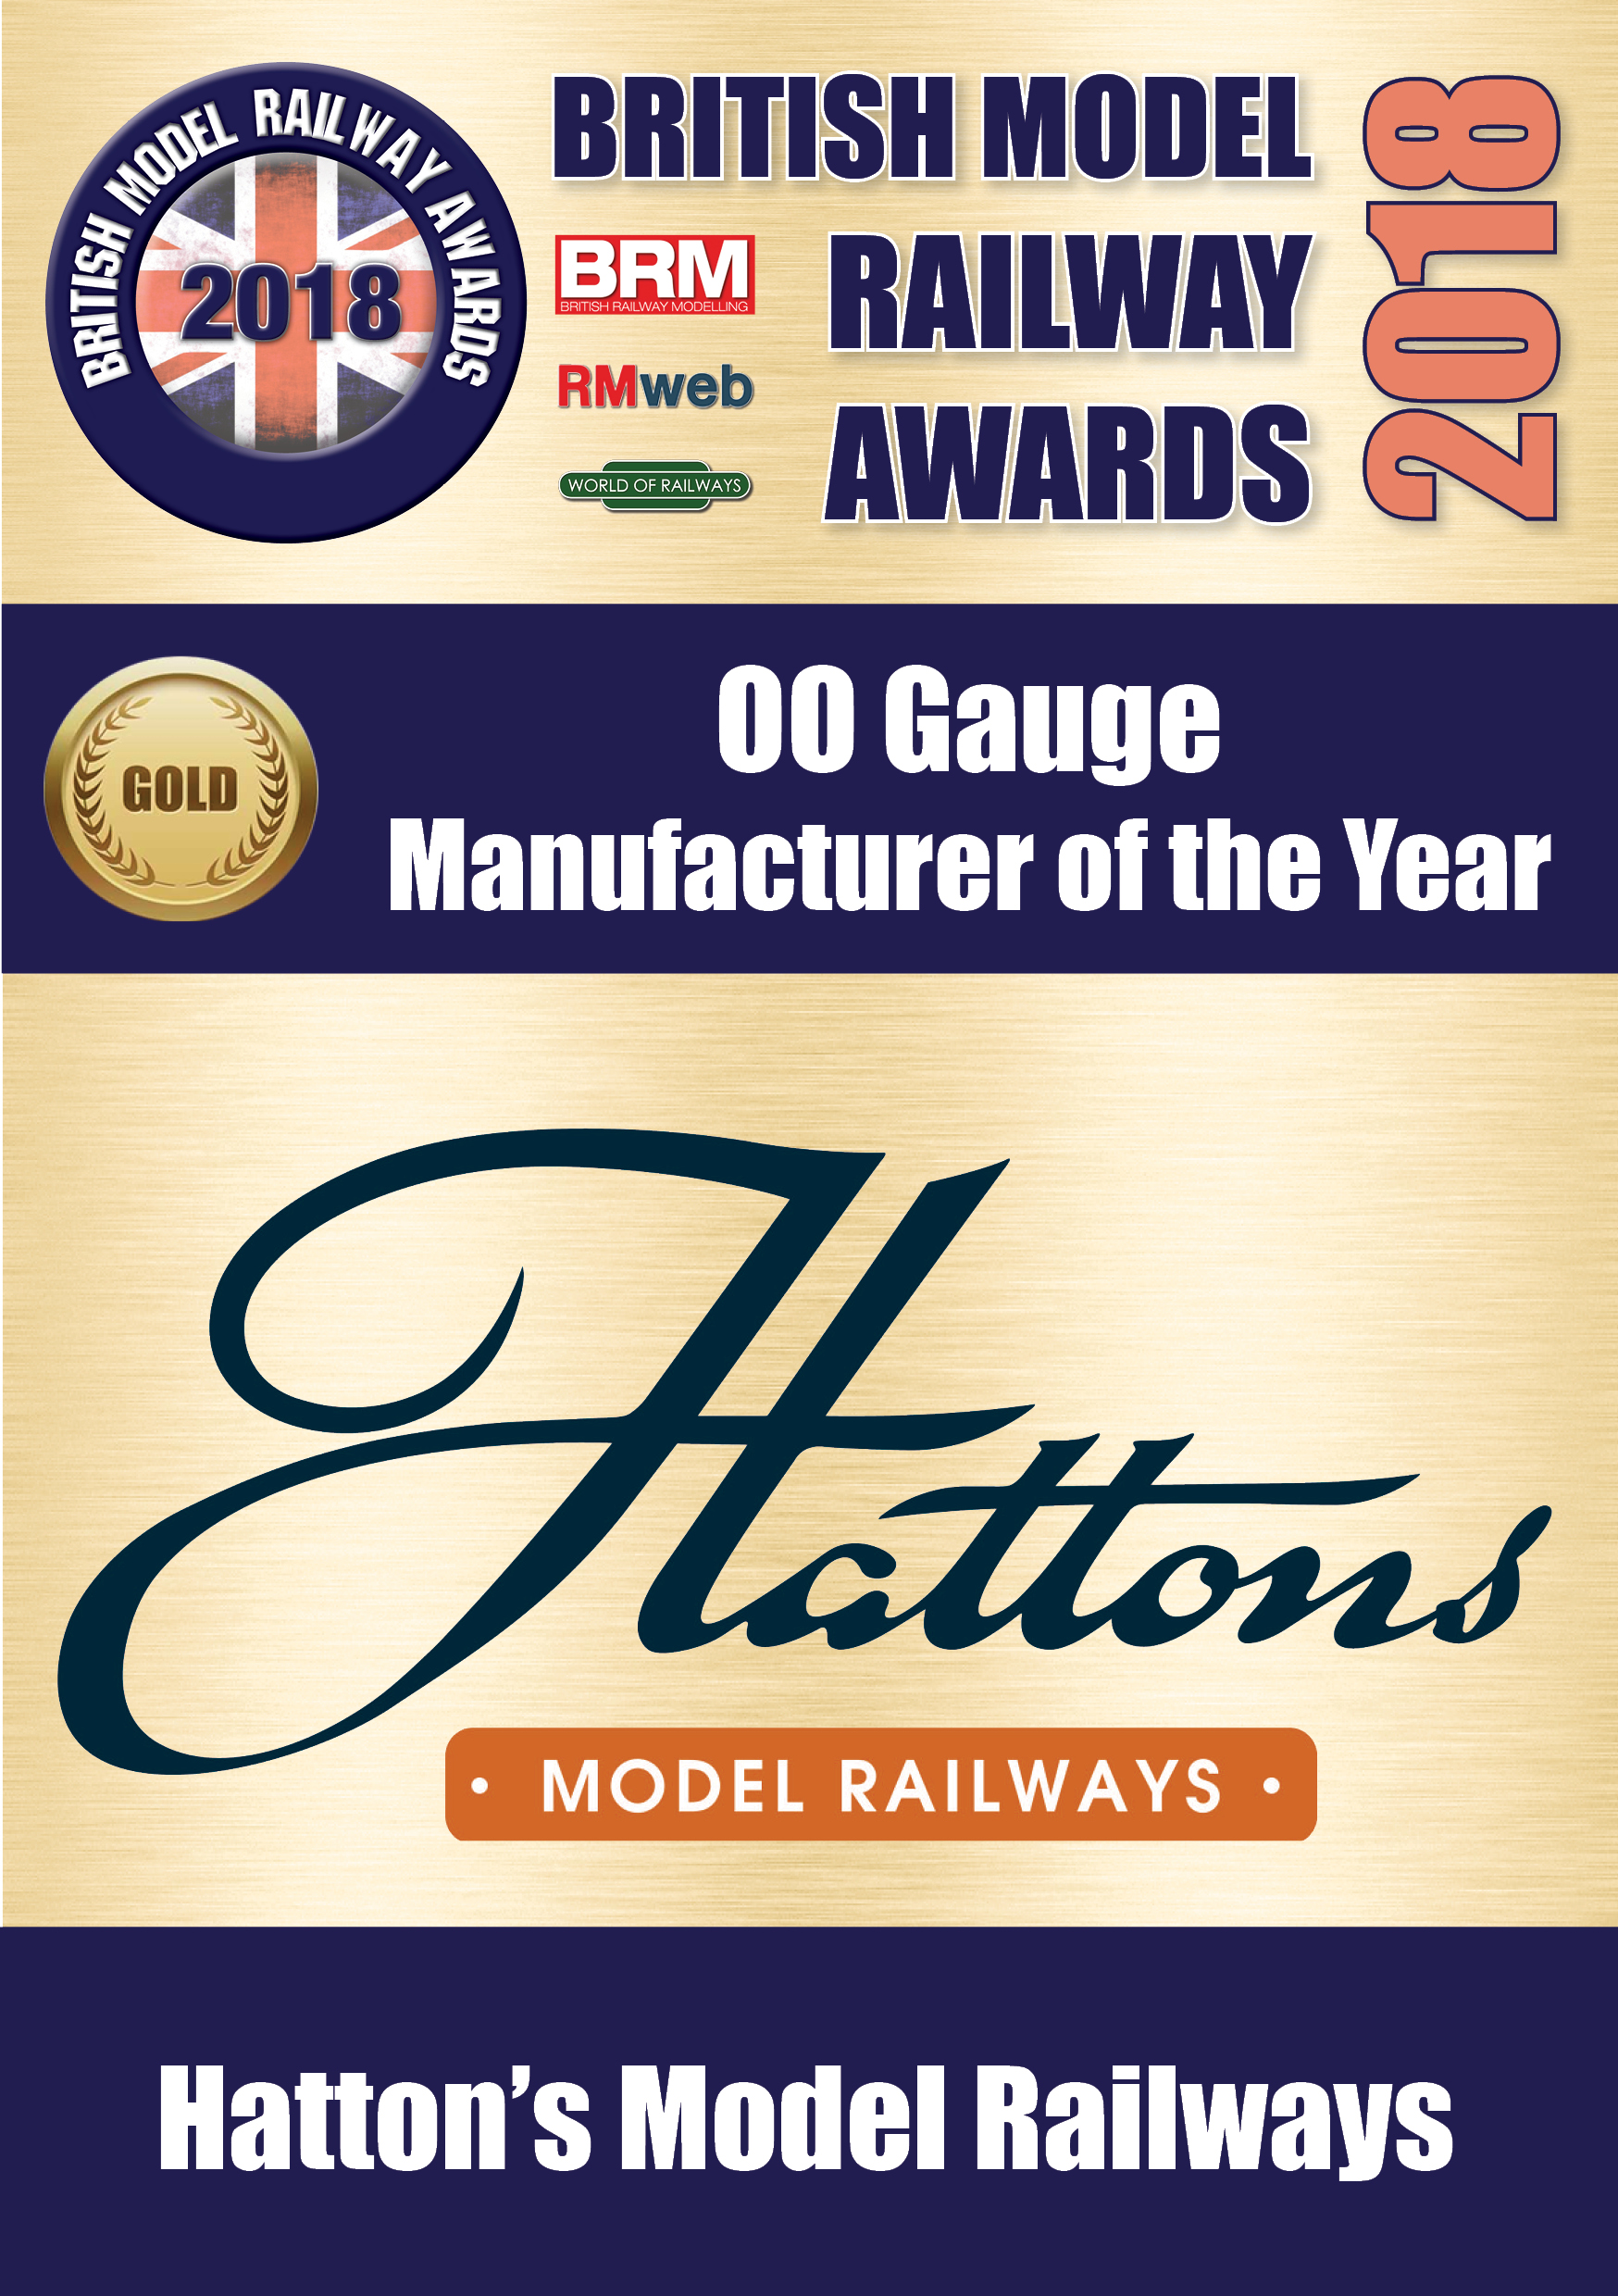 British Model Railway Awards 2018 from Hattons Model Railways